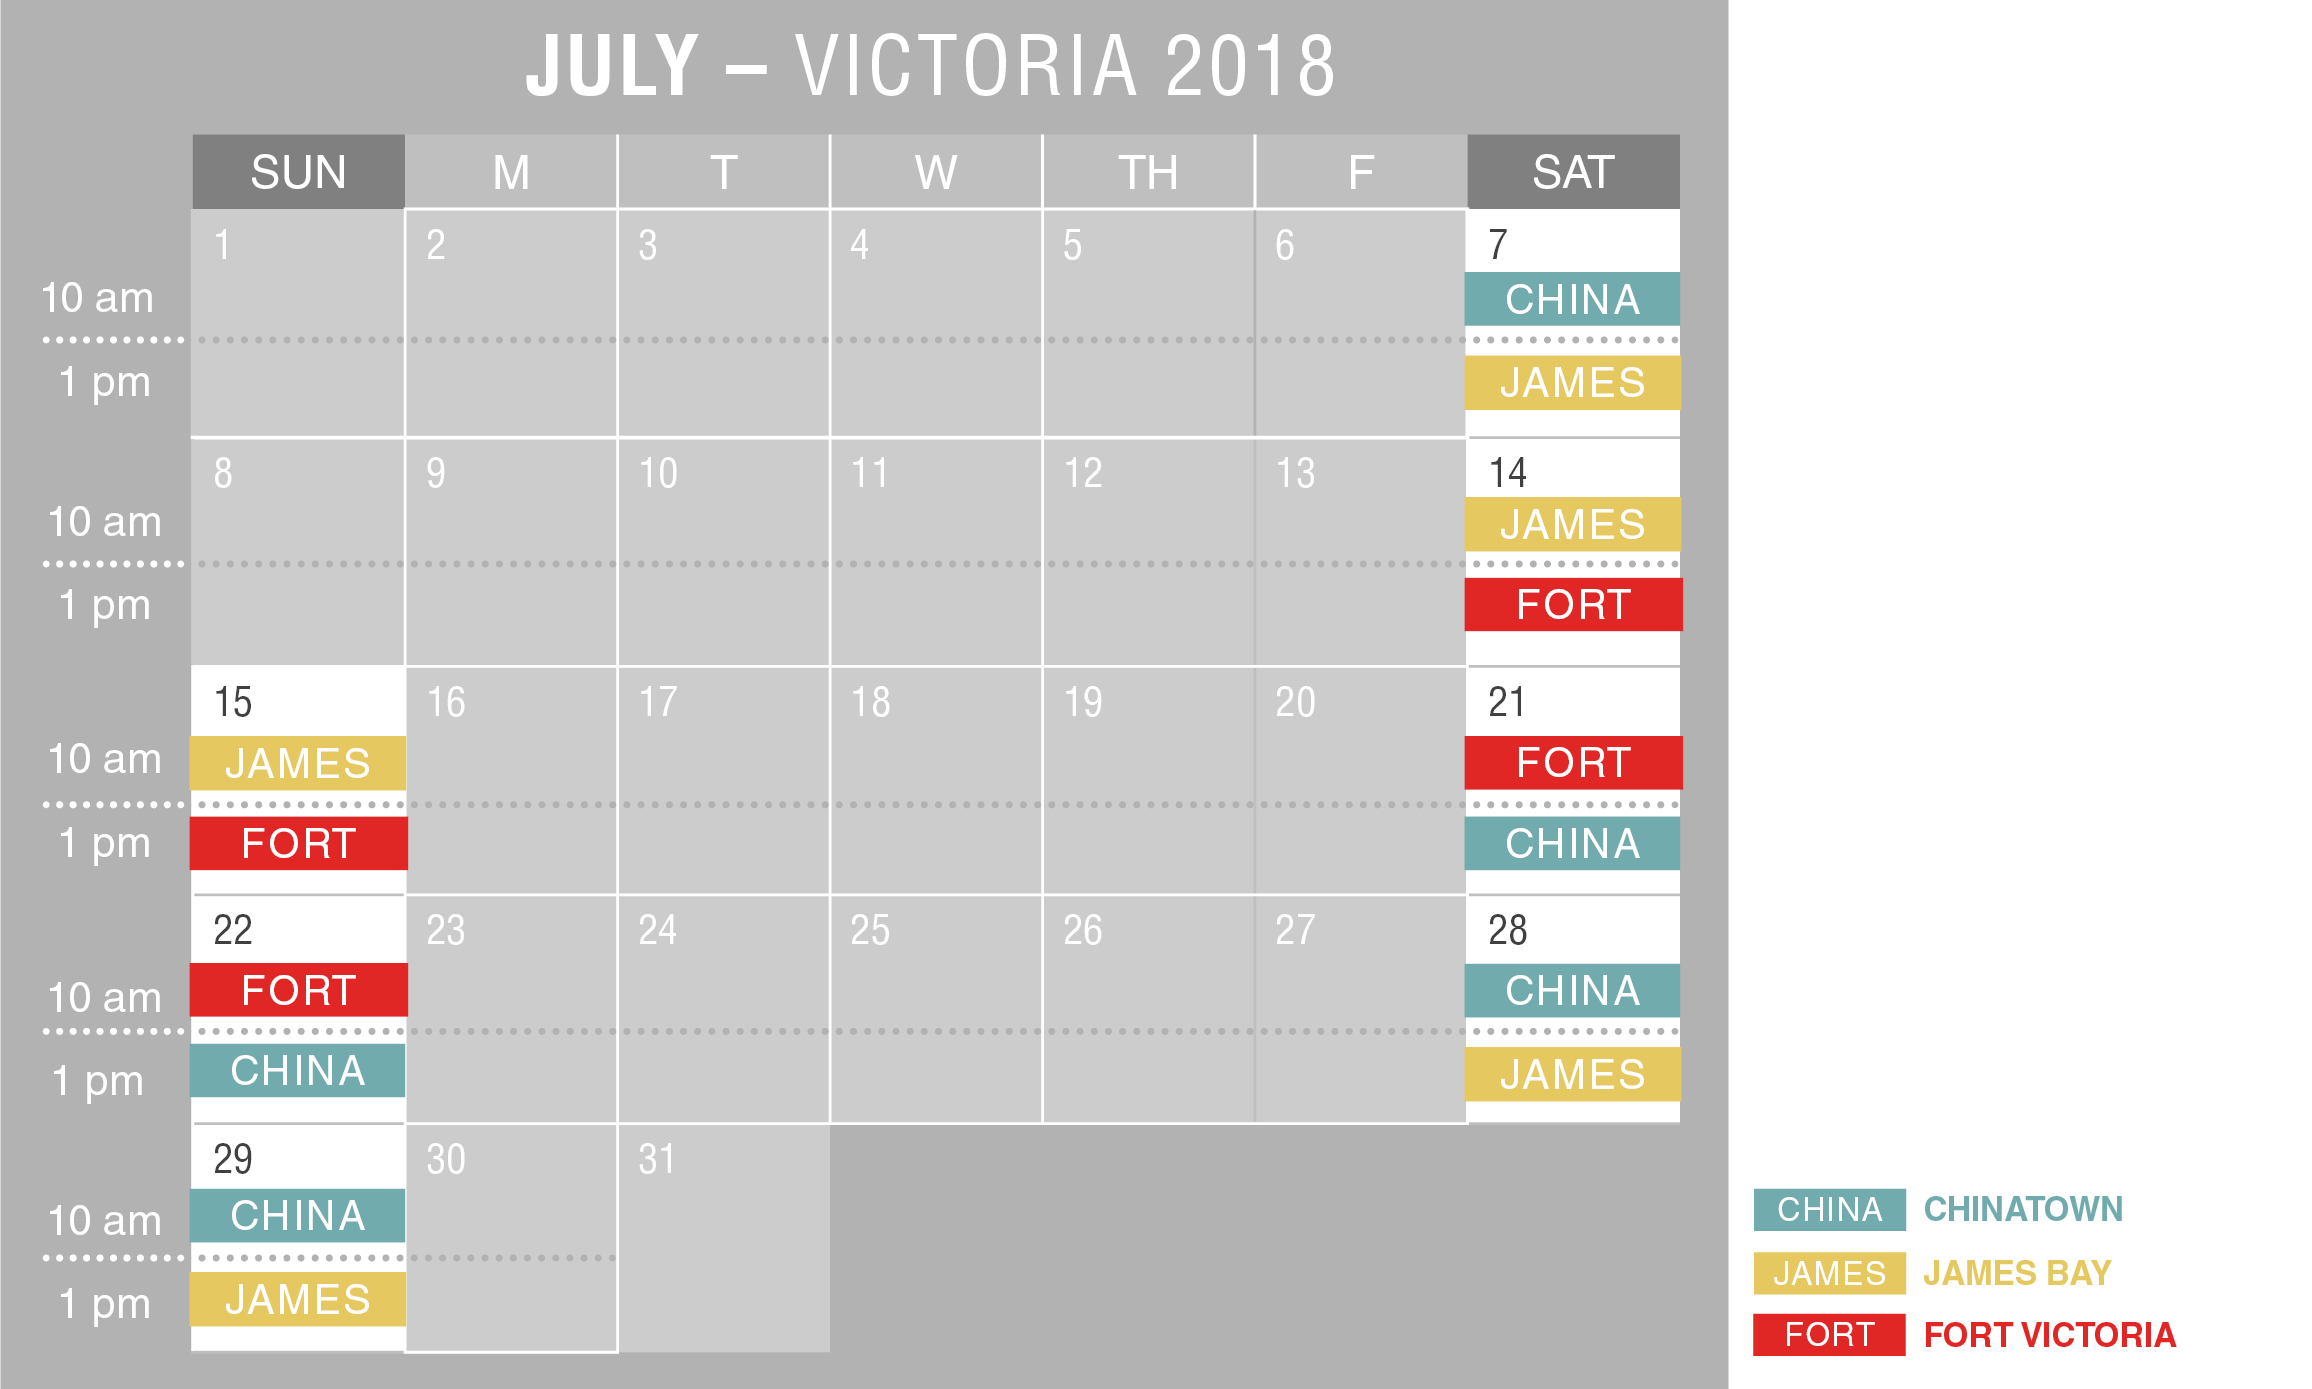 2018 Victoria Walking Tour Schedule July